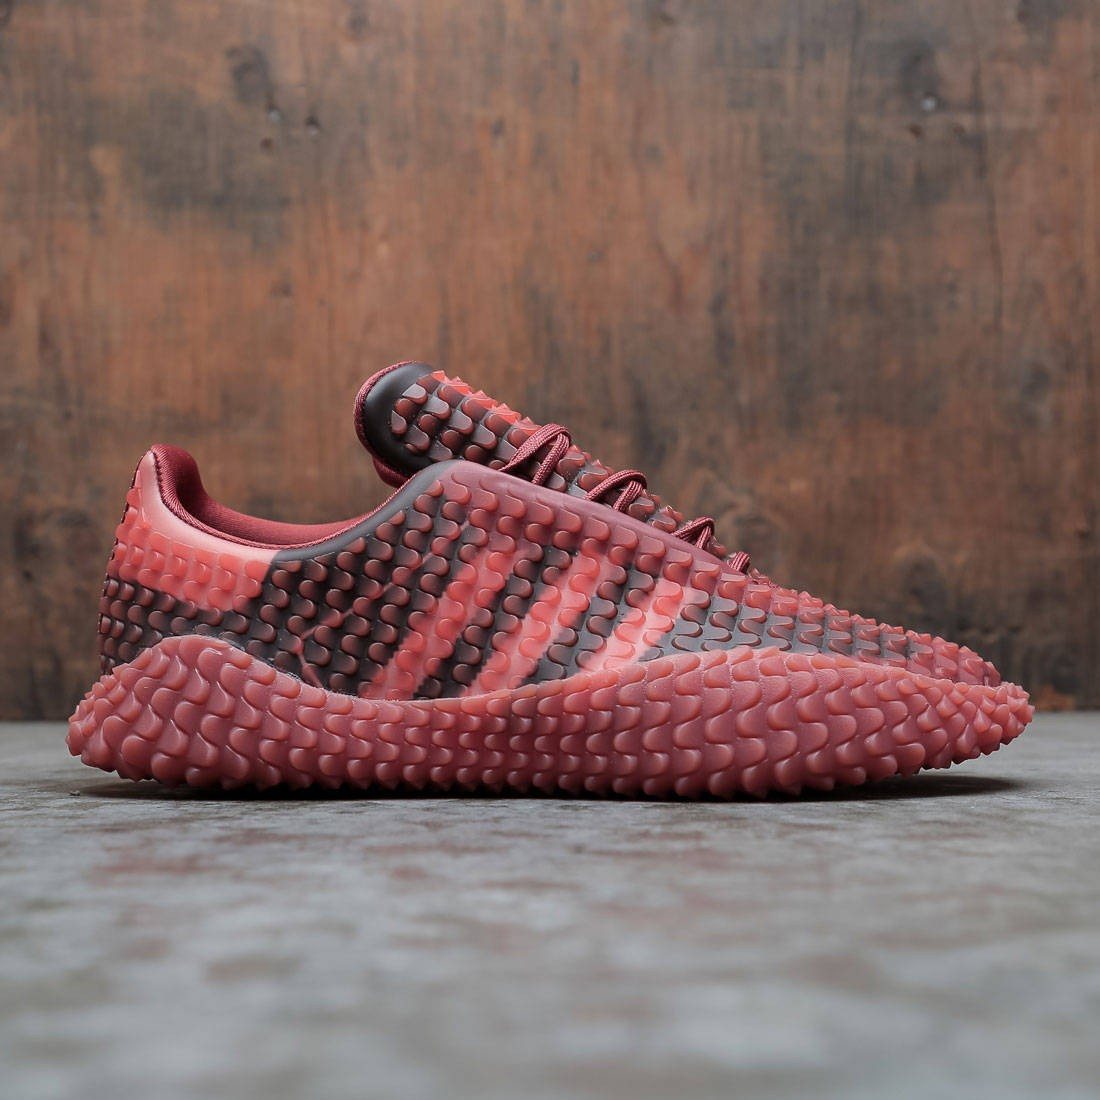 Adidas x Craig Green Men Graddfa AKH (burgundy / core black / collegiate burgundy)